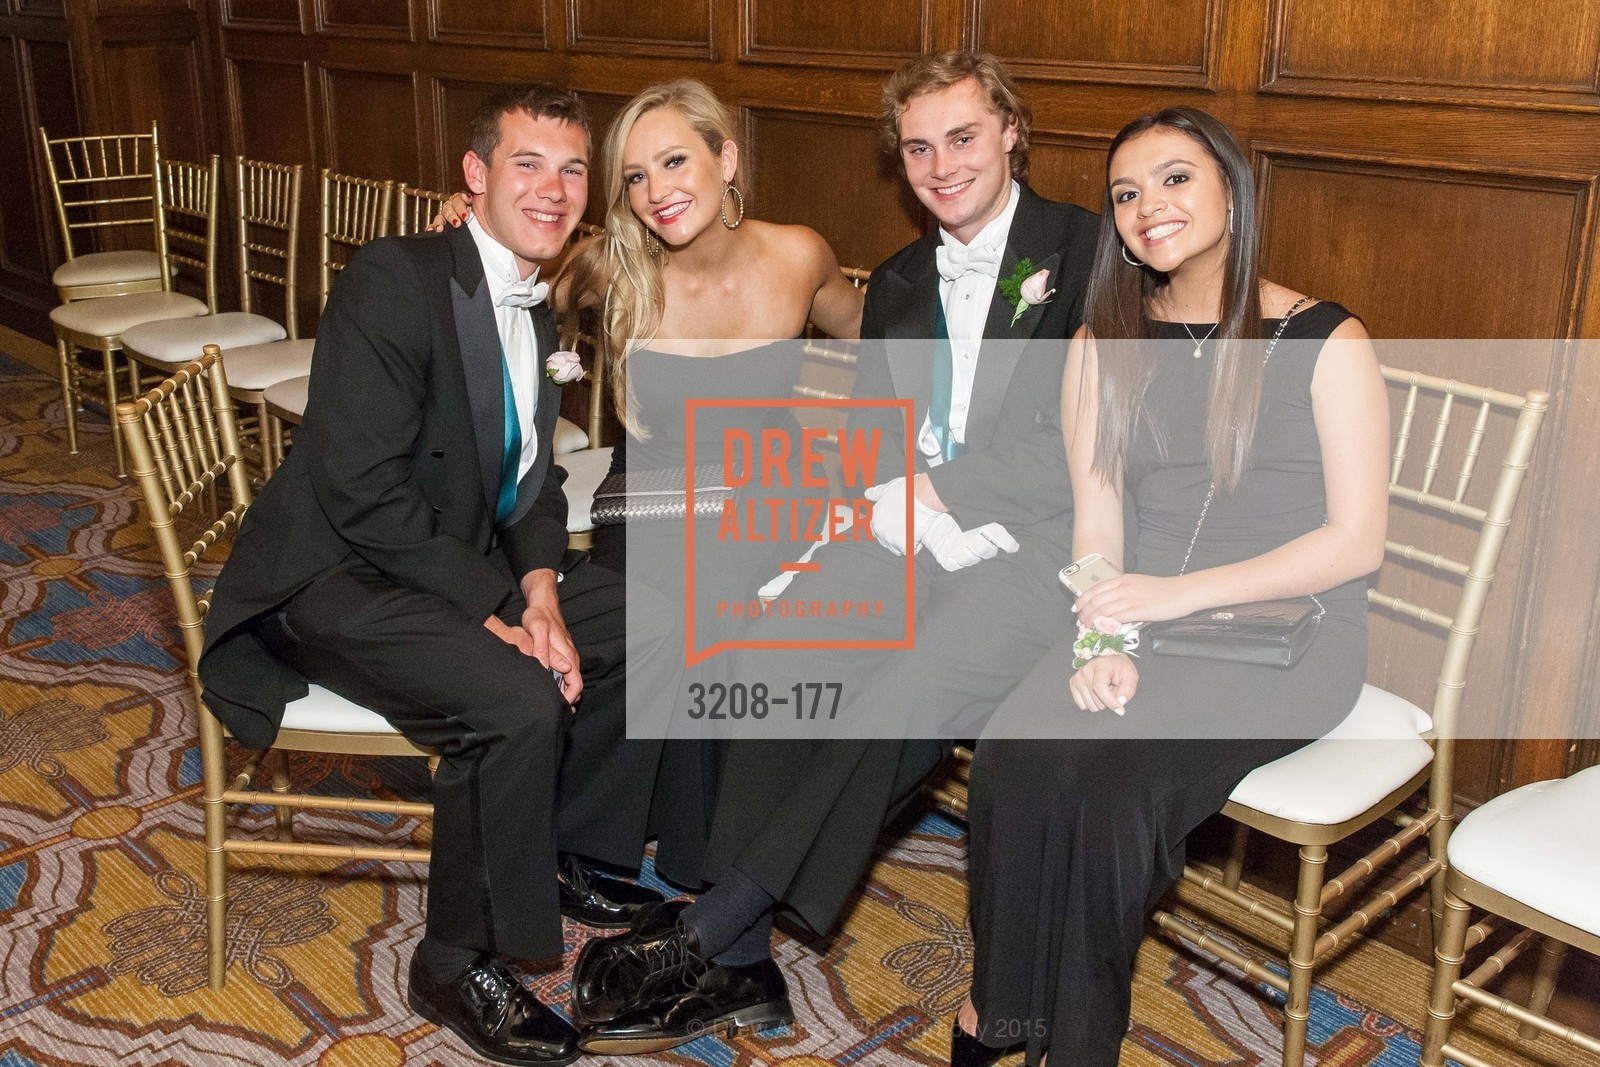 Paul Maxwell, Michaela Papale, Cole Steigerwald, Samantha Dilley, The 2015 San Francisco Debutante Ball, The Westin St. Francis San Francisco Union Square. 335 Powell St, June 20th, 2015,Drew Altizer, Drew Altizer Photography, full-service agency, private events, San Francisco photographer, photographer california